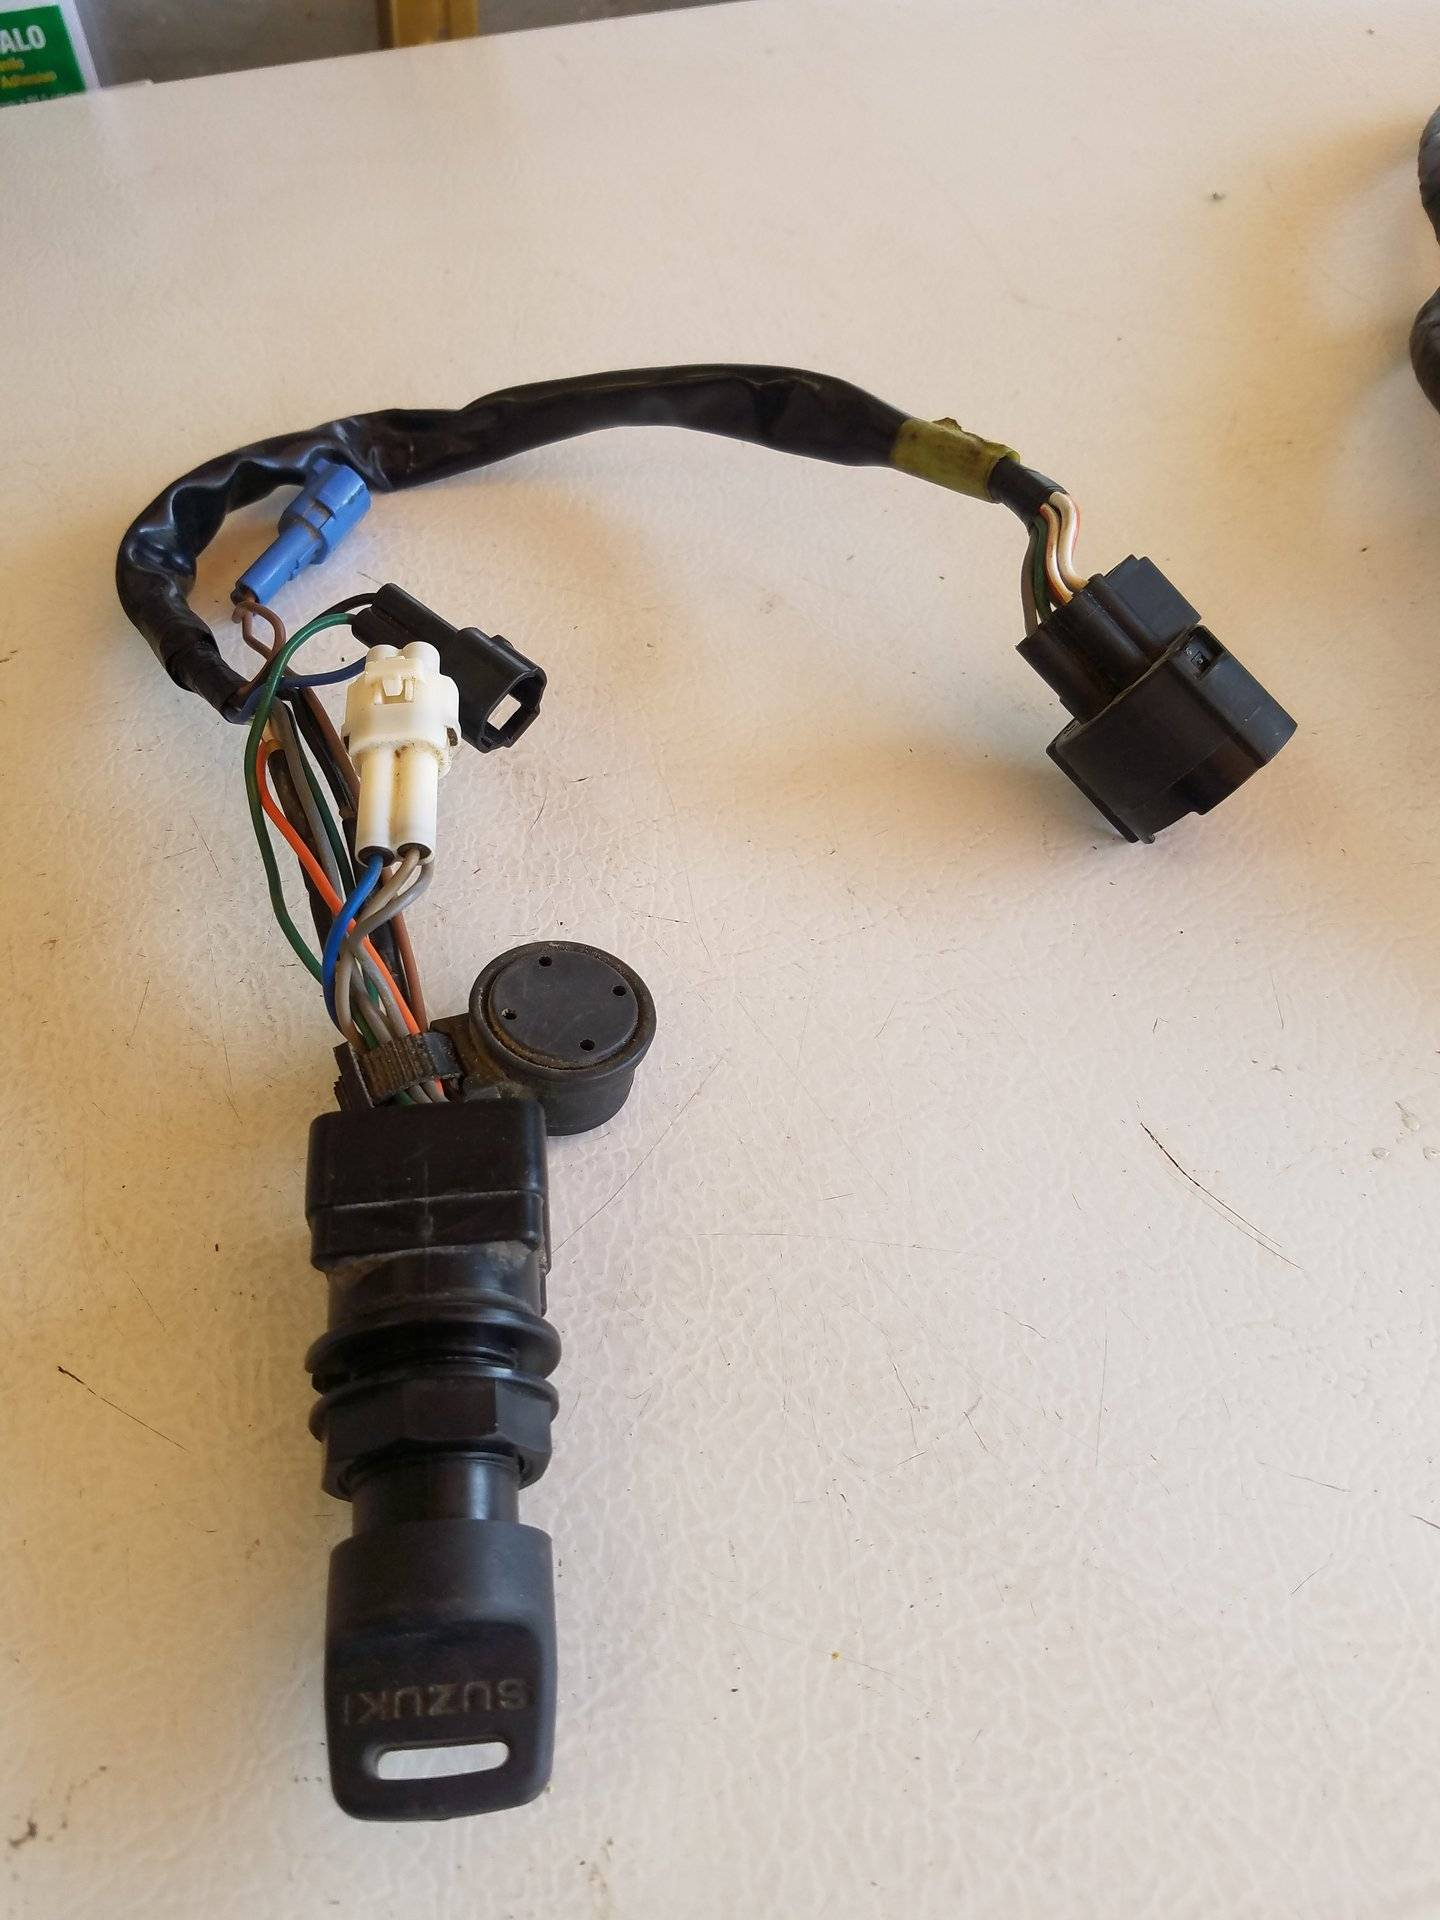 suzuki outboard ignition switch w/key, wiring harness $50